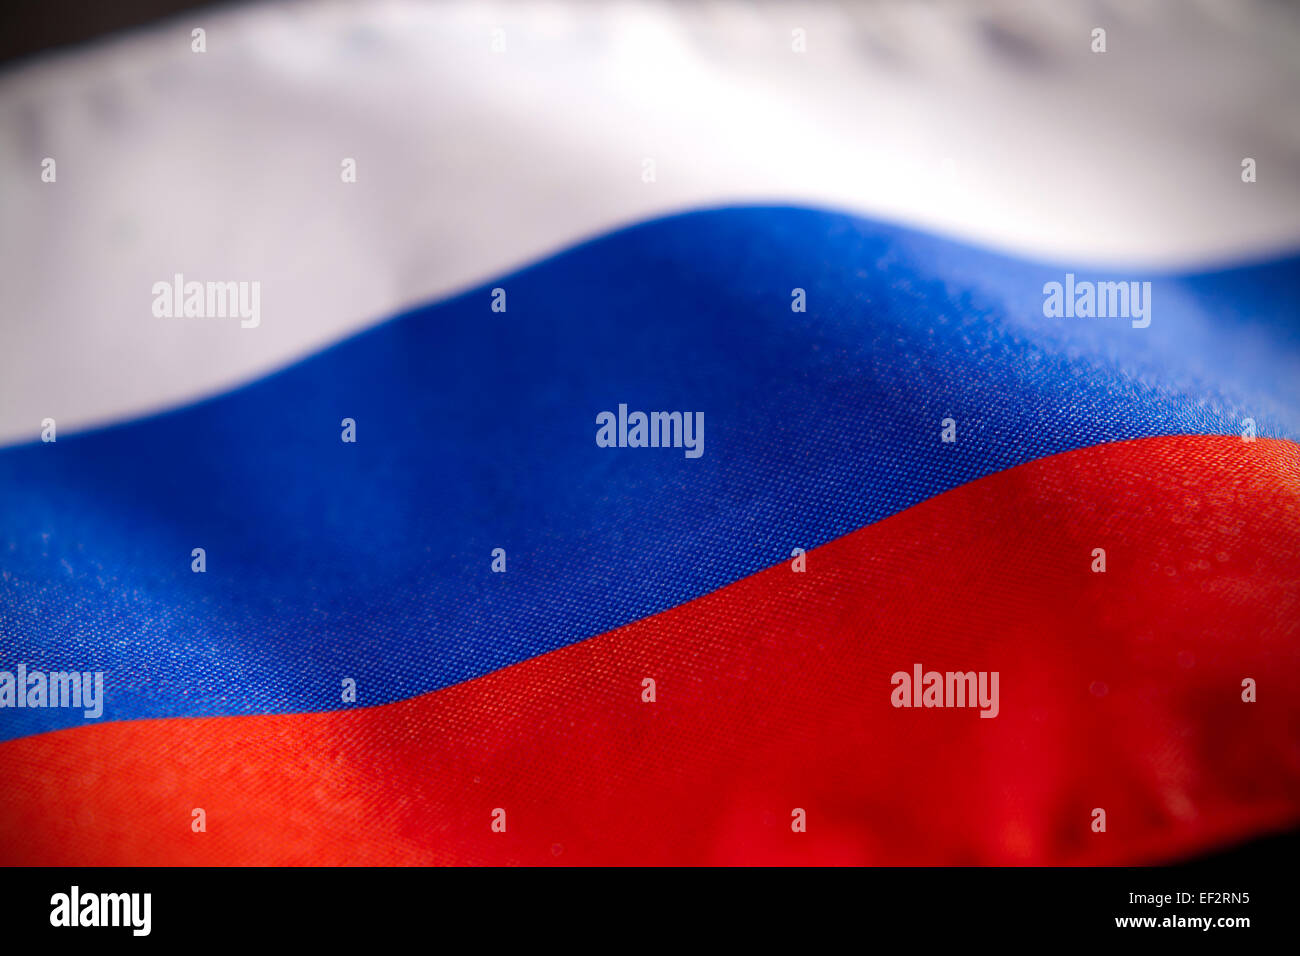 Russian Federation flag -- Abstract macro view of with shallow depth of field - Stock Image